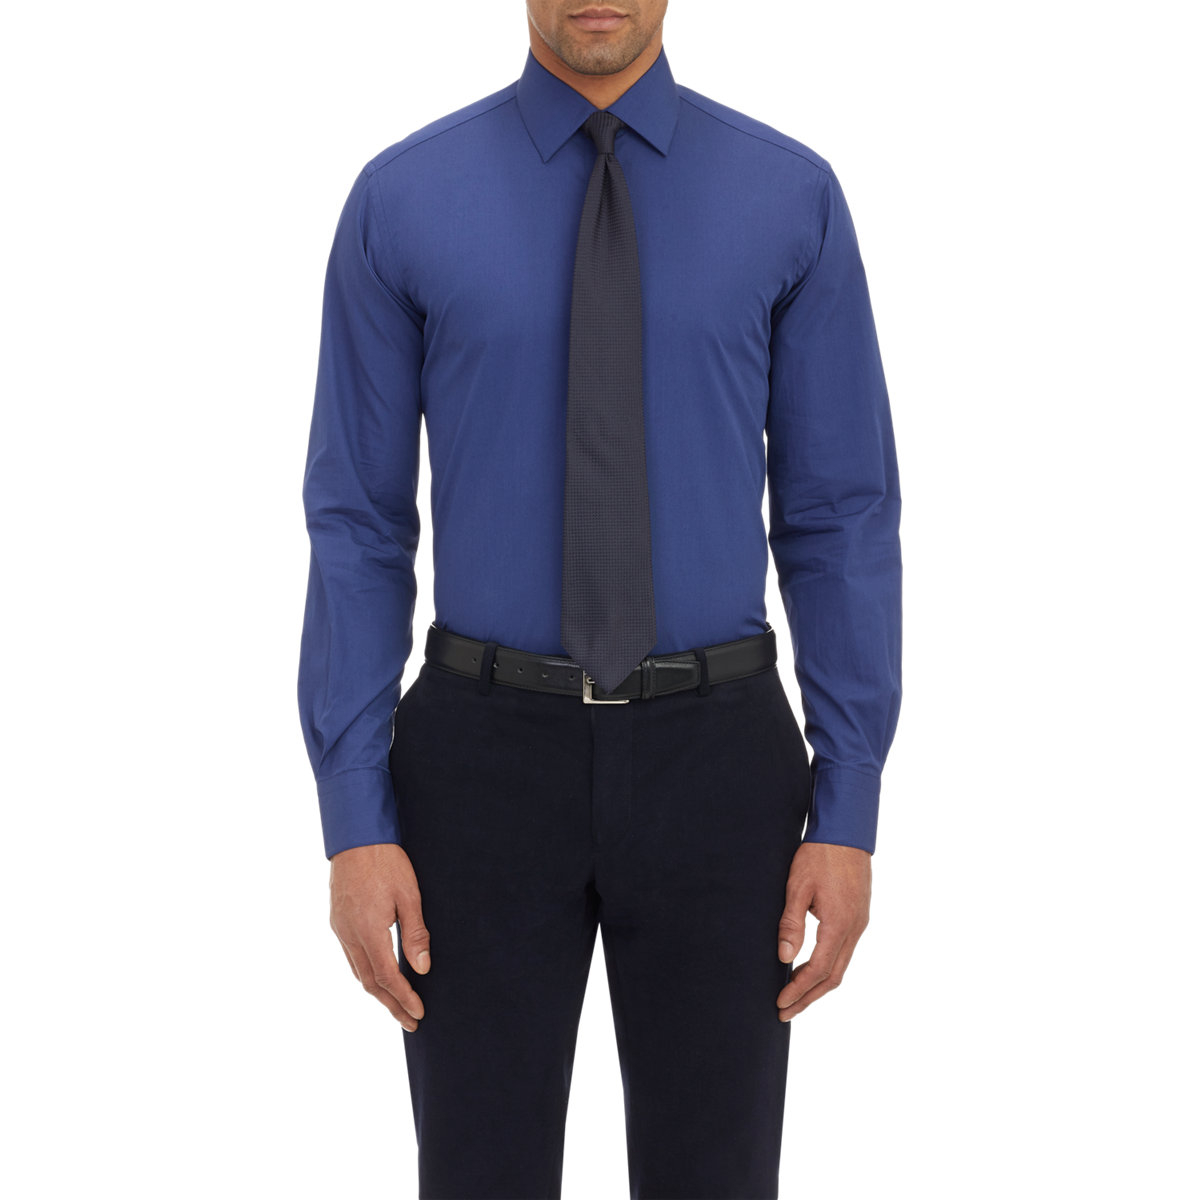 Men's Dress Shirts. Search. Filter Style Clear Casual Business Casual Business Formal. Color Clear White Black Blue Red Green Yellow Pink Orange. Price Clear On Sale Under $ $ - $ $ - $ Over $ Ordering Fabric Samples How to Care for Shirts How Dress Shirts Shrink Common Fit Problems How to Measure Your Body.